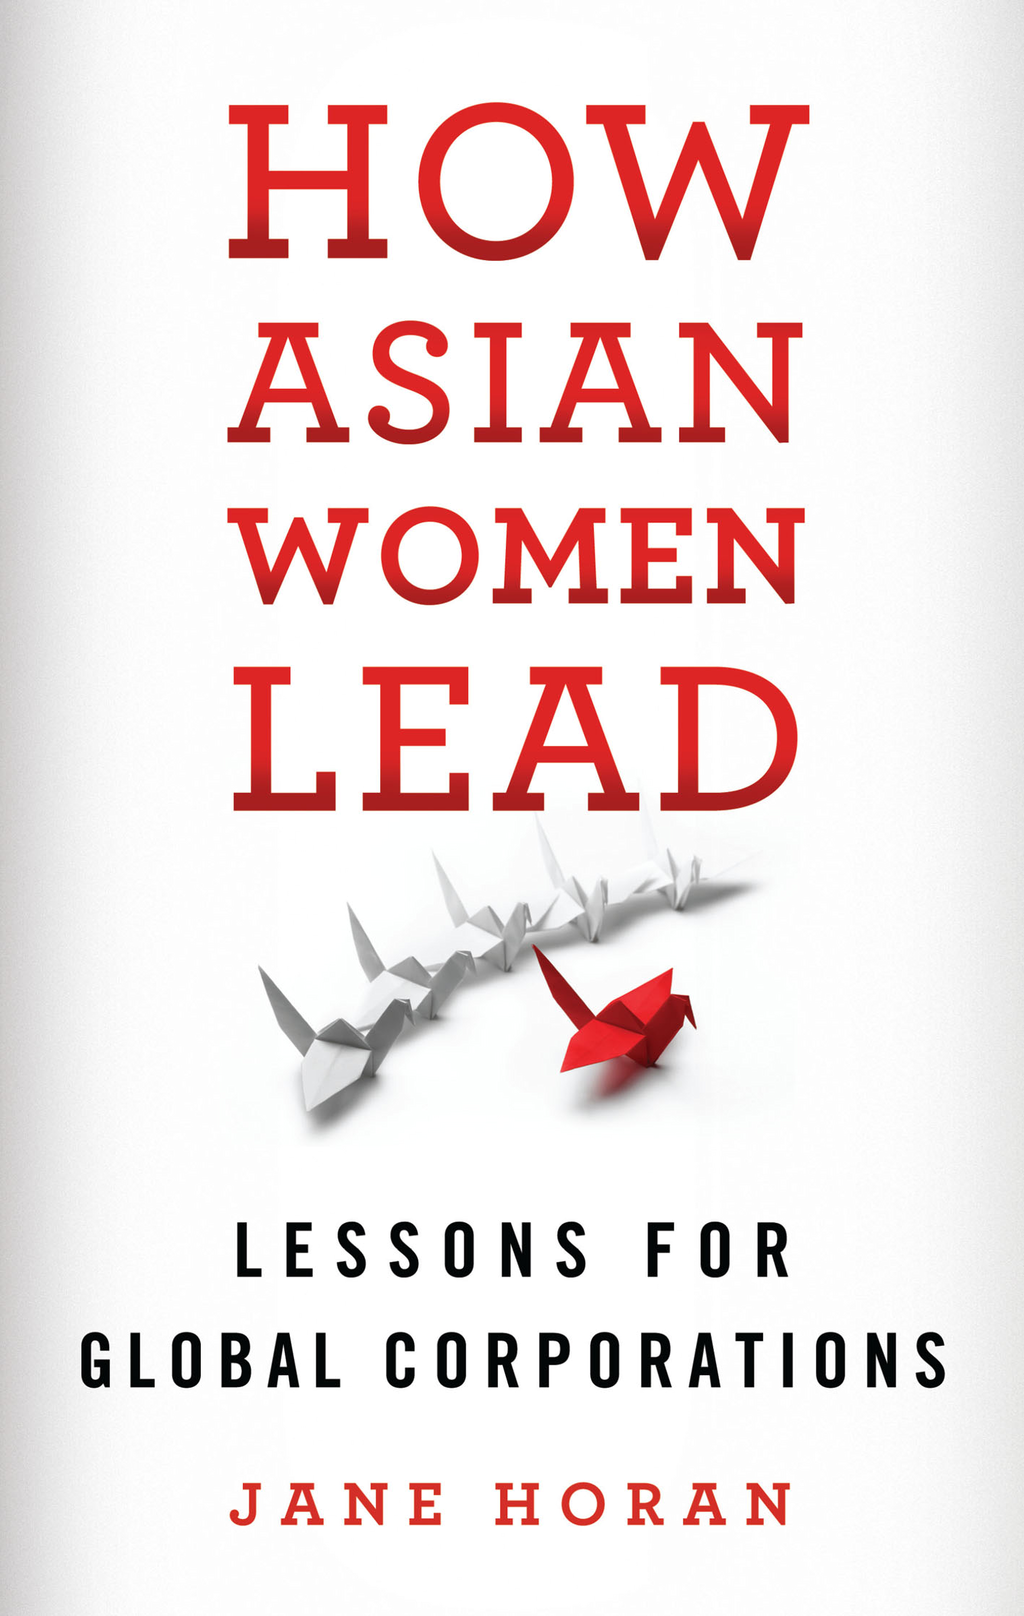 How Asian Women Lead Lessons for Global Corporations